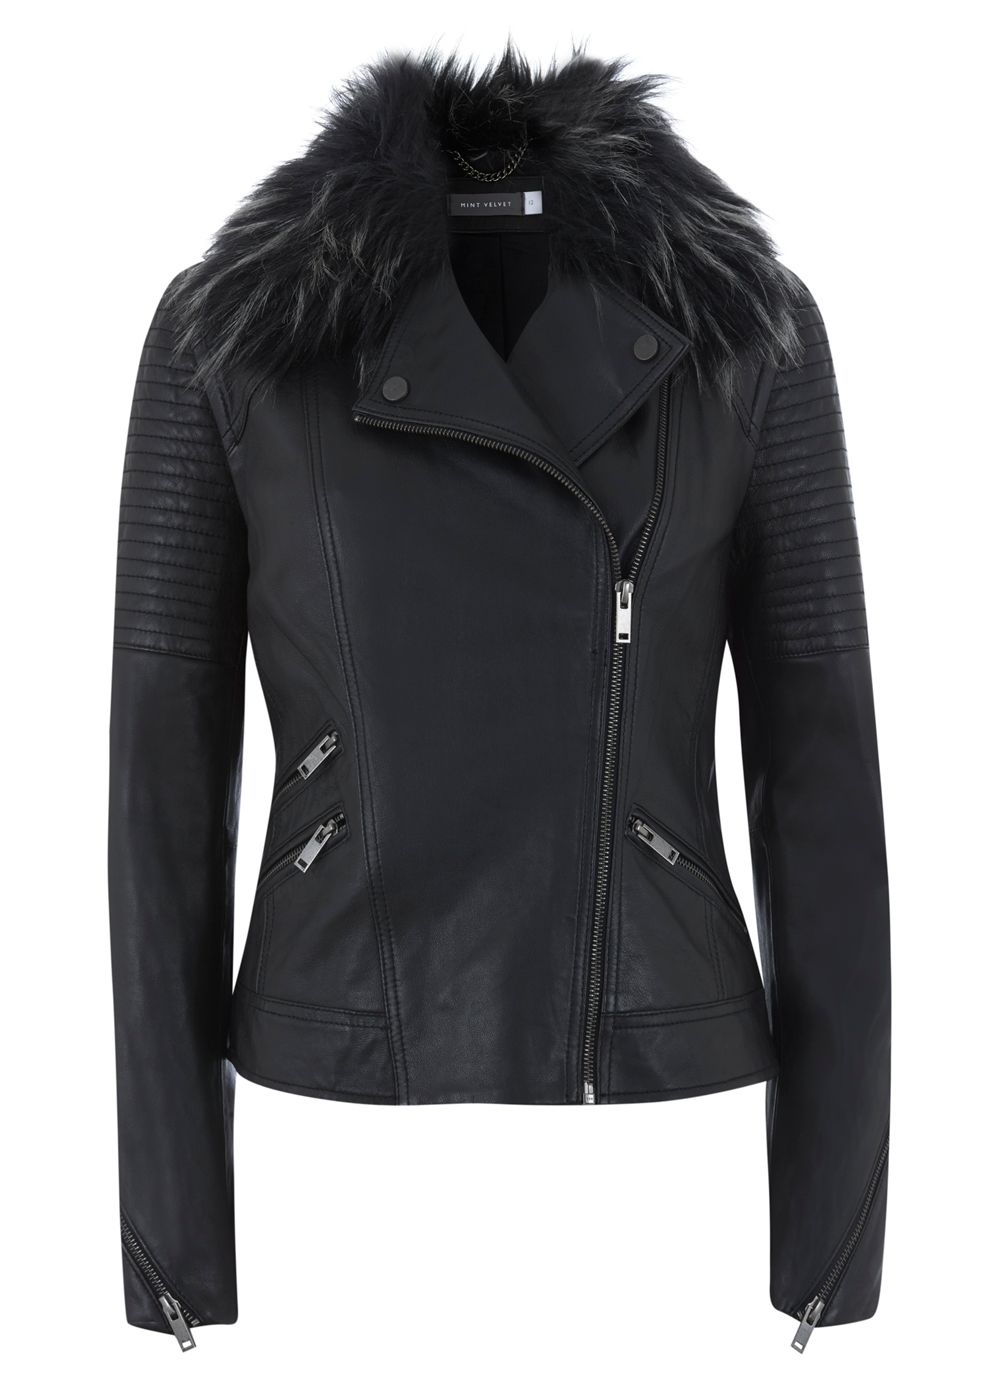 Black Fur Collar Aviator Jacket